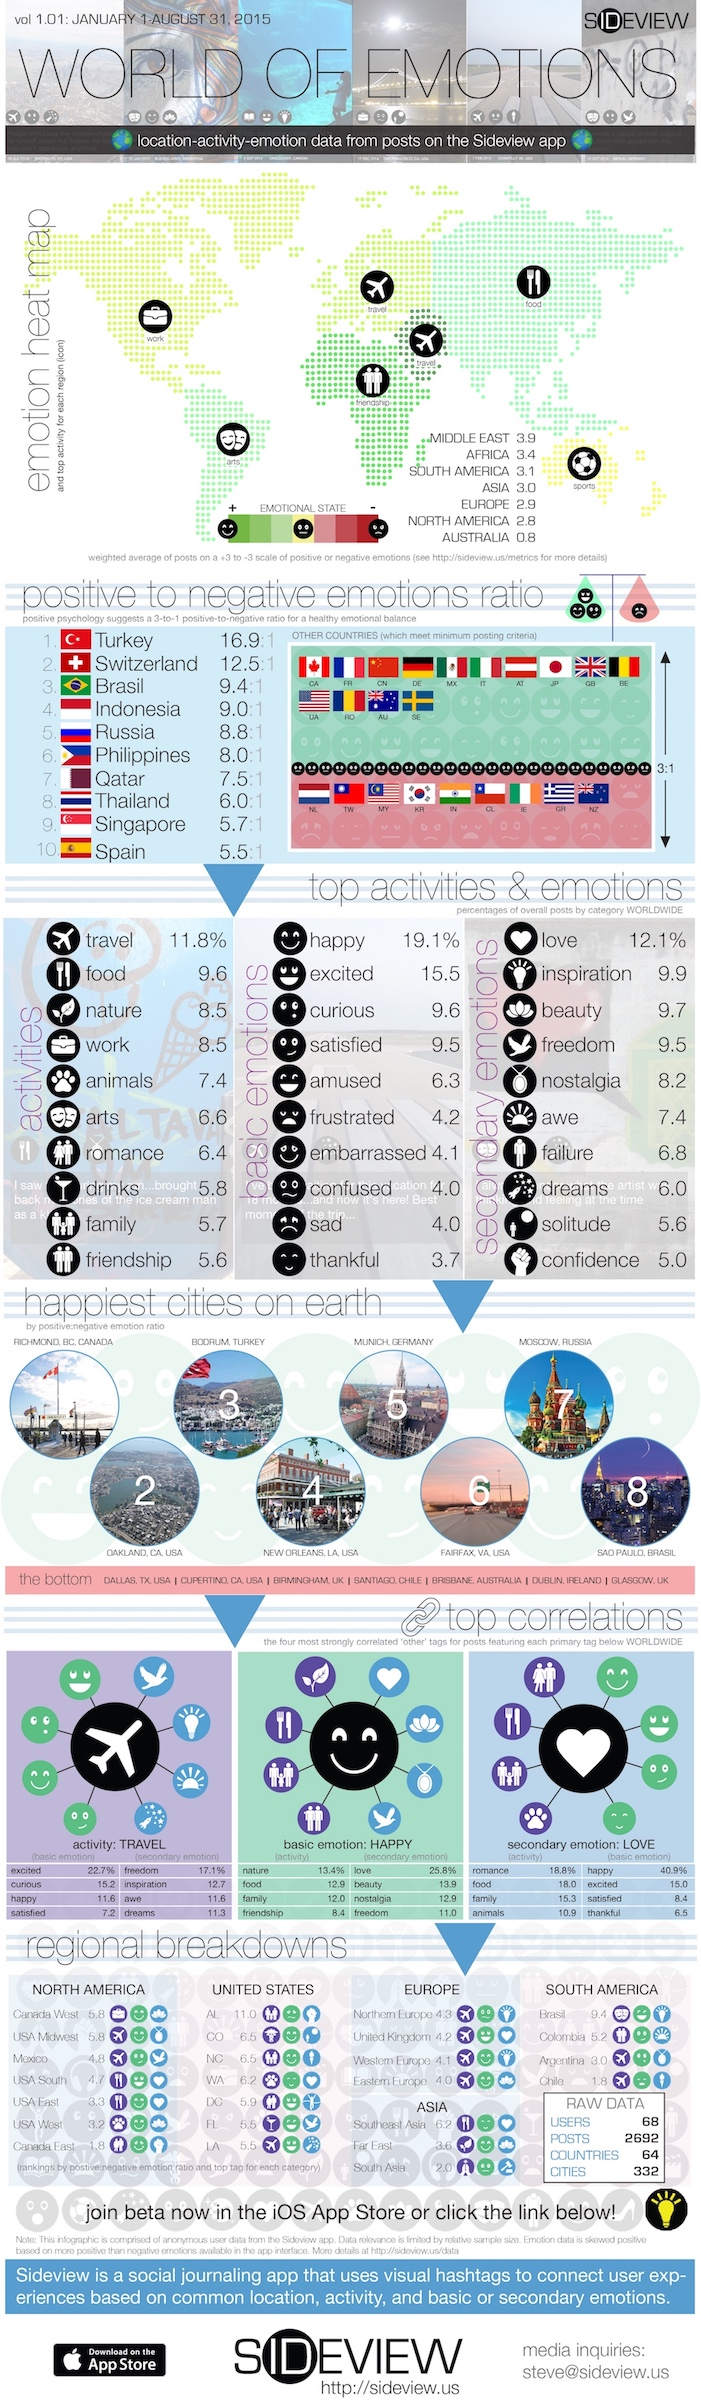 Infographic of world statistics via Sideview